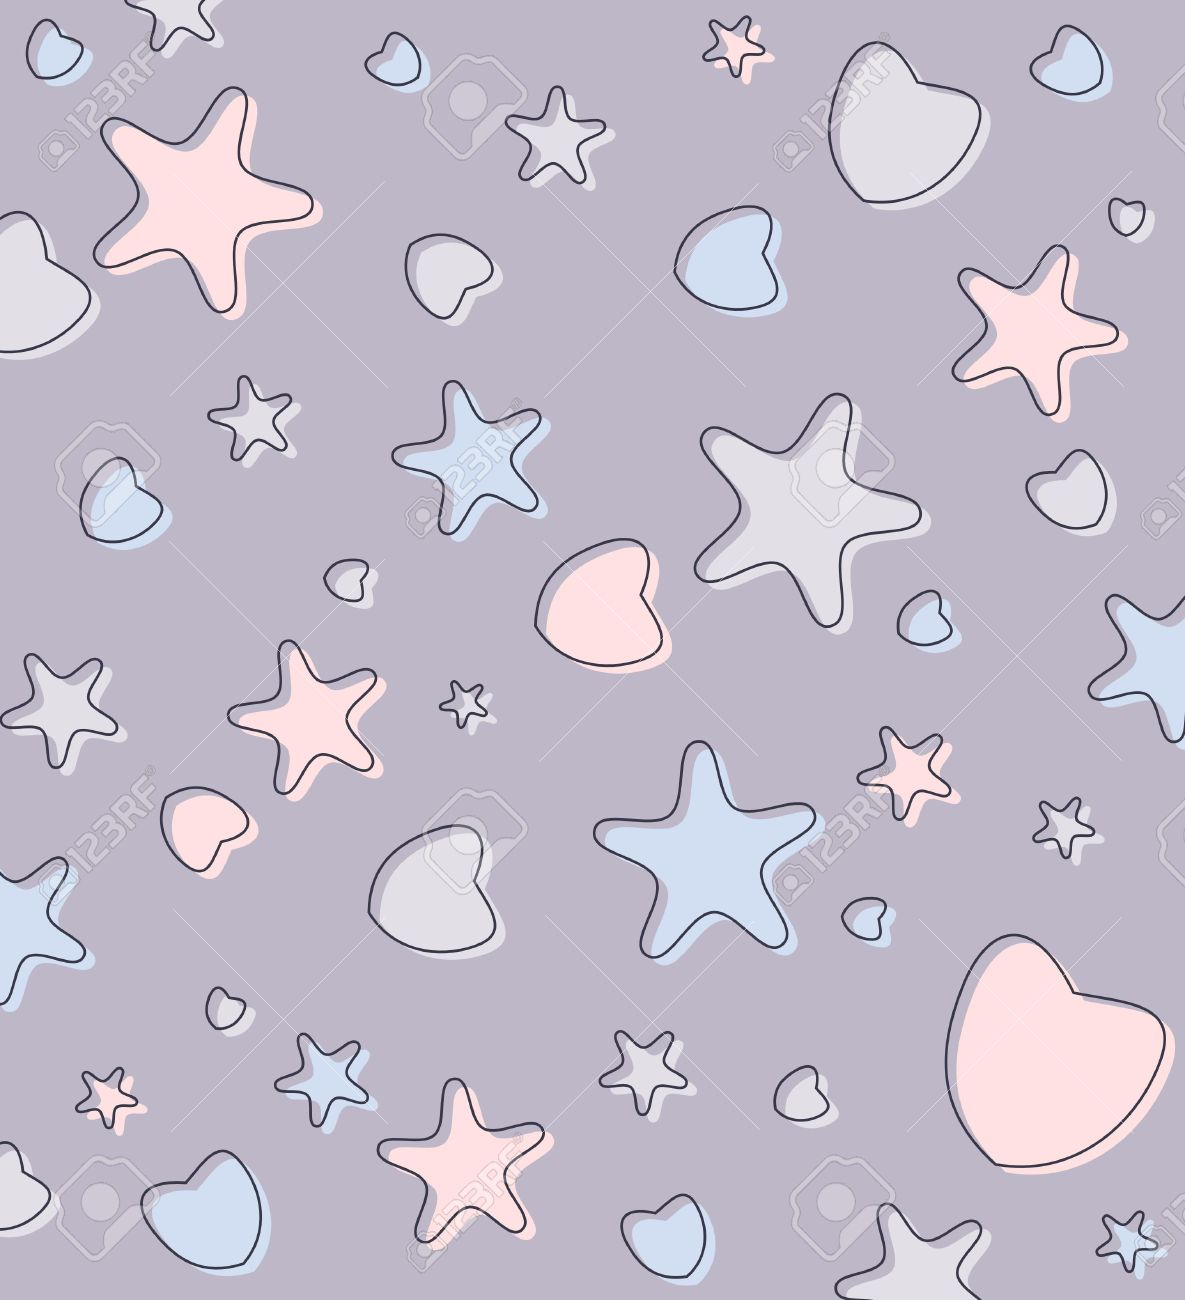 cute pastel background with hearts and stars-wallpaper stock photo